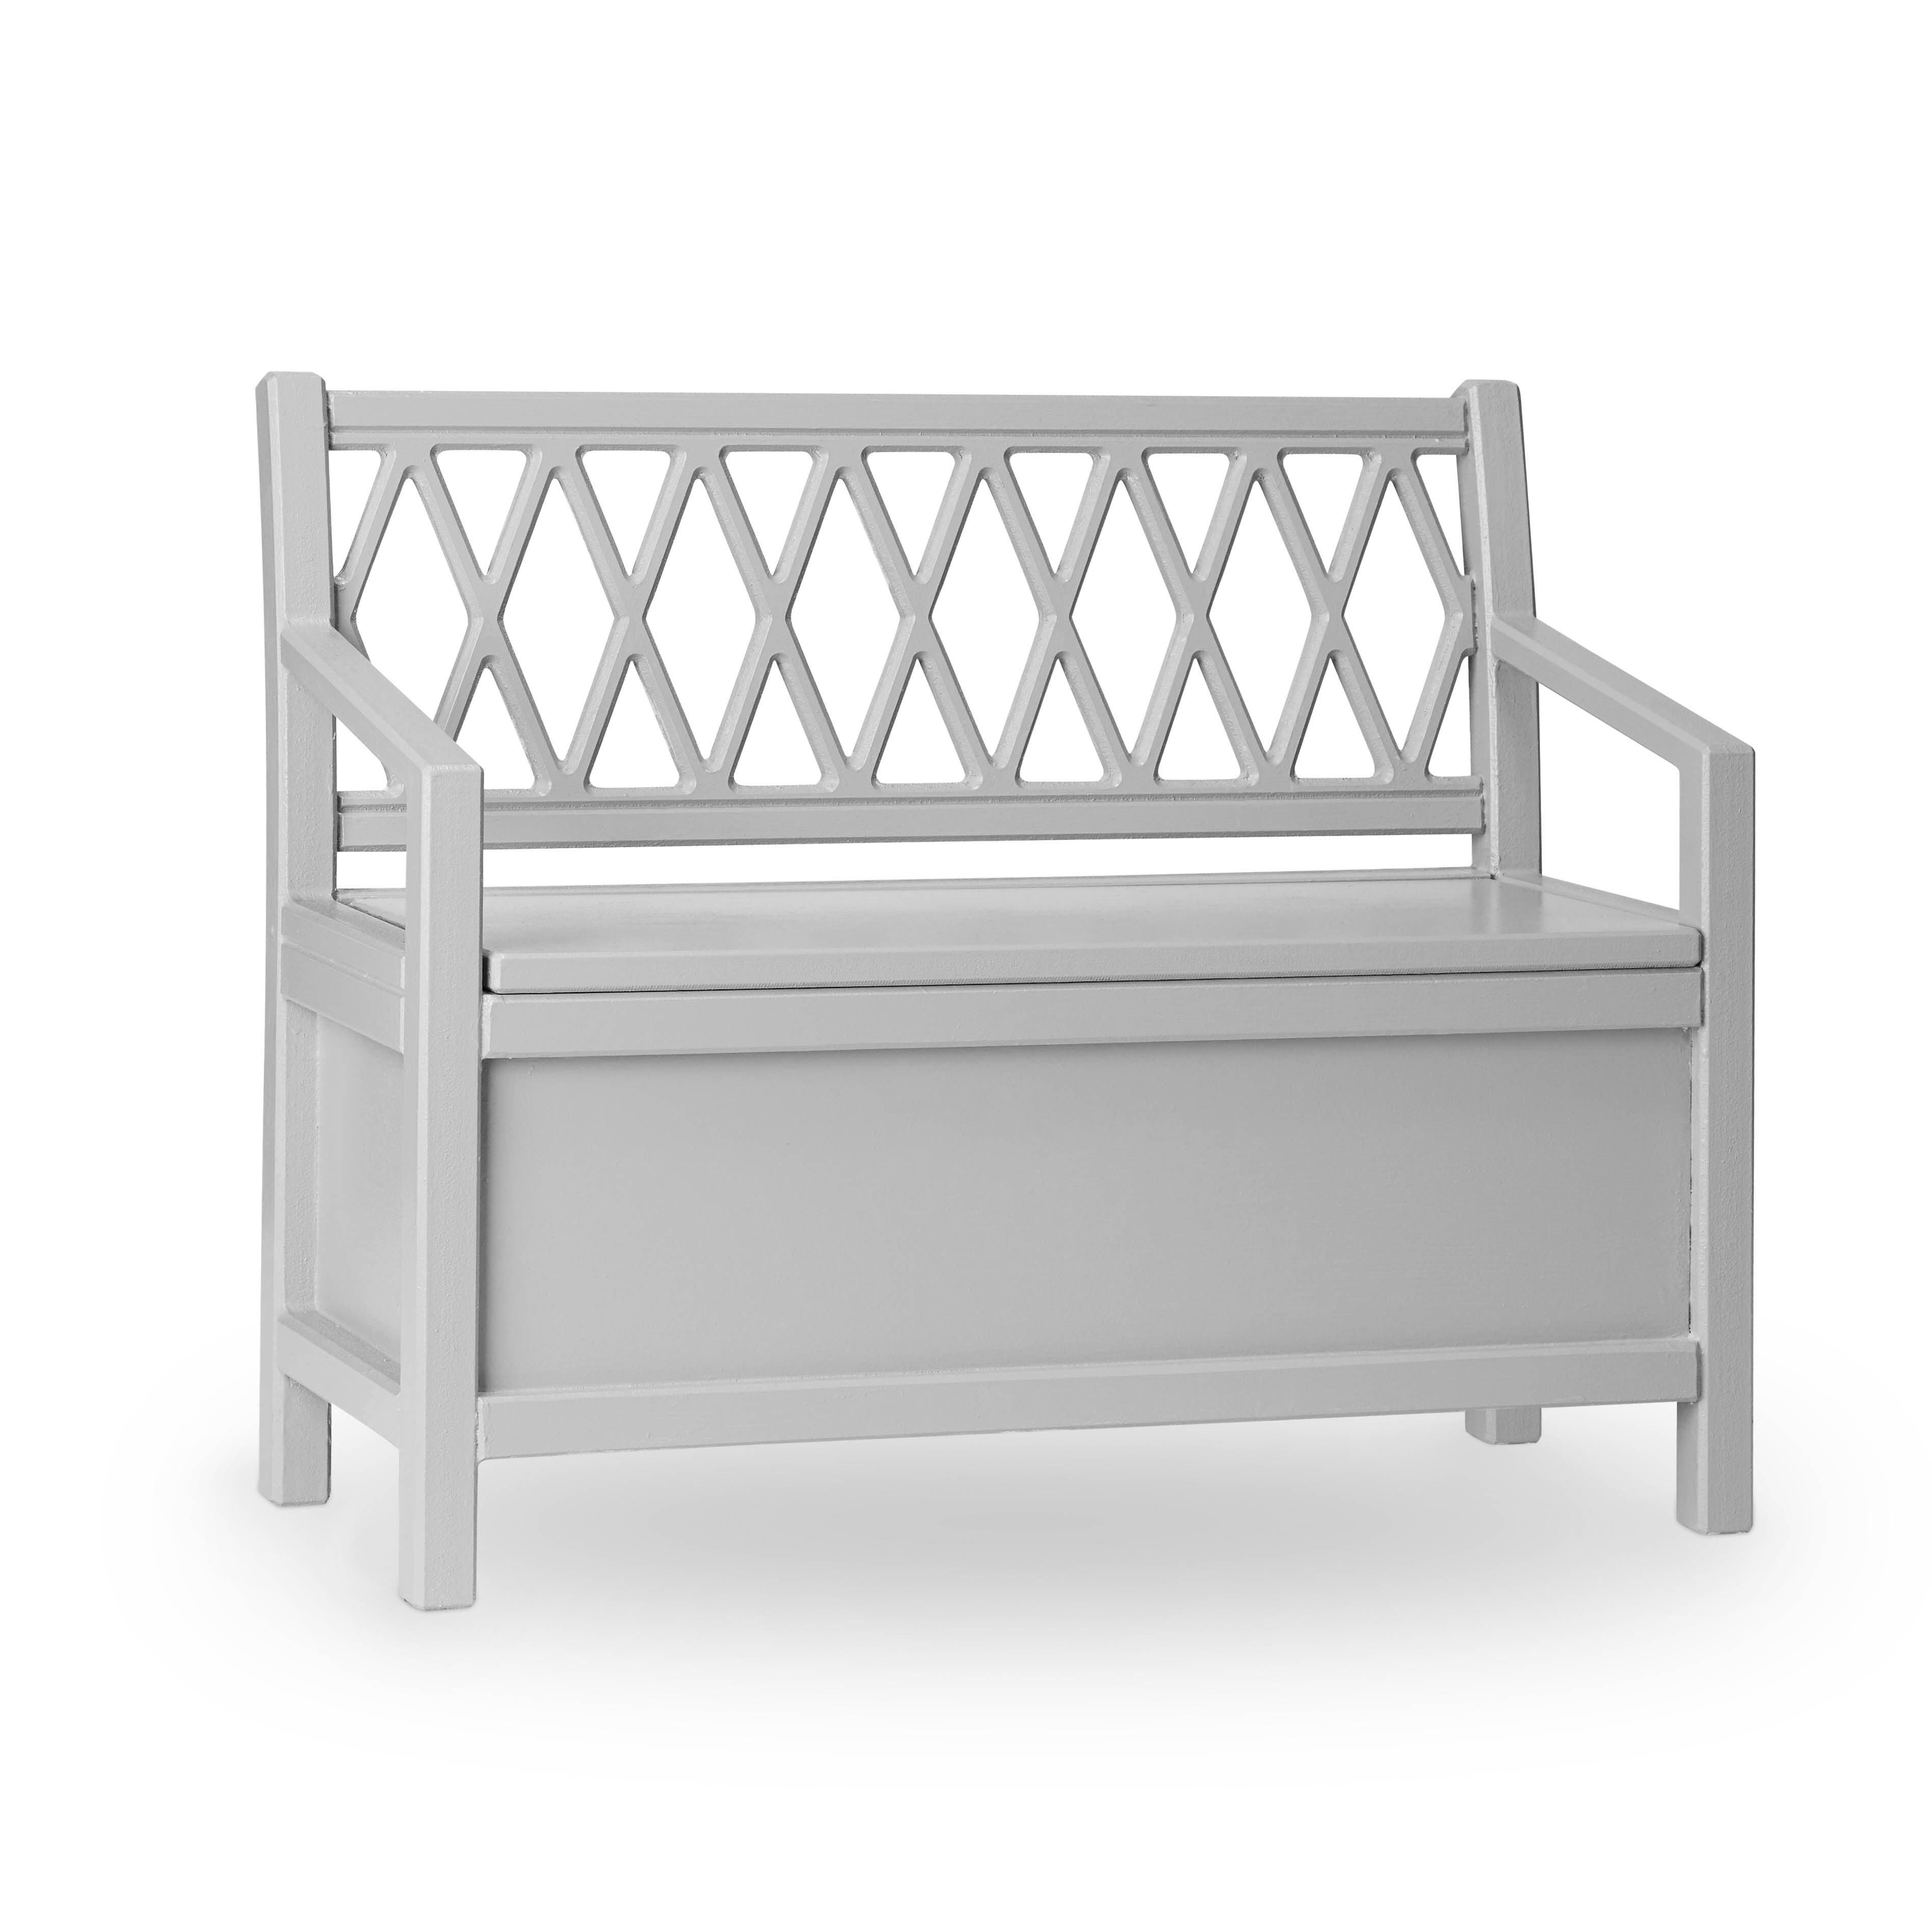 Cam Cam Copenhagen Harlequin Kids Storage Bench Grey